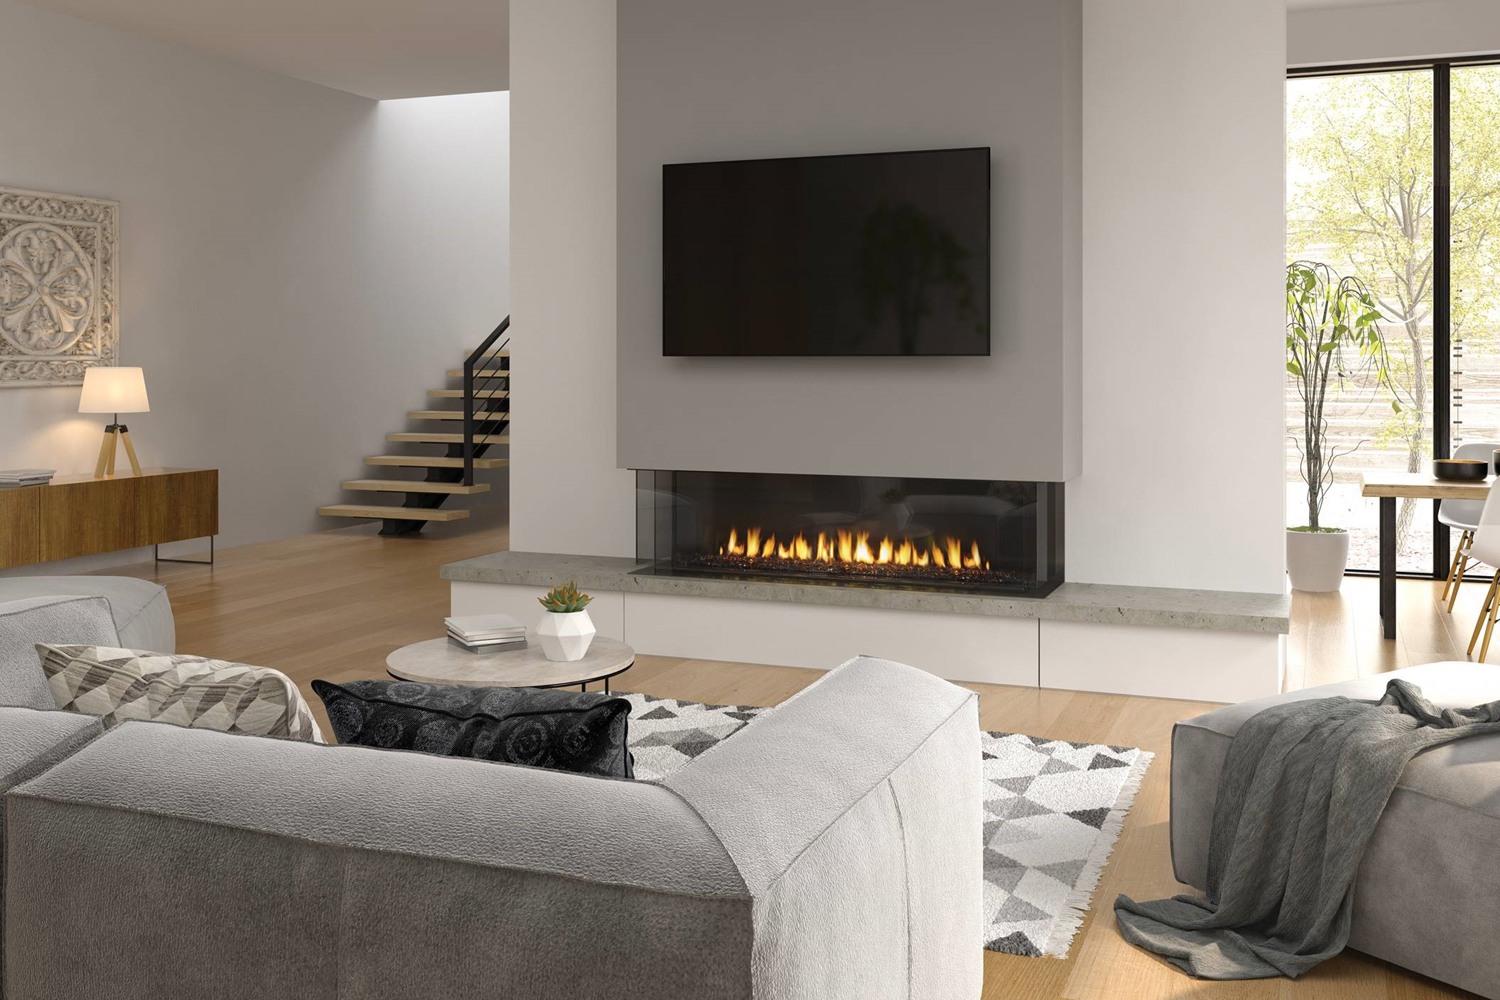 Regency's 'City Series' is the perfect fit for any modern living space